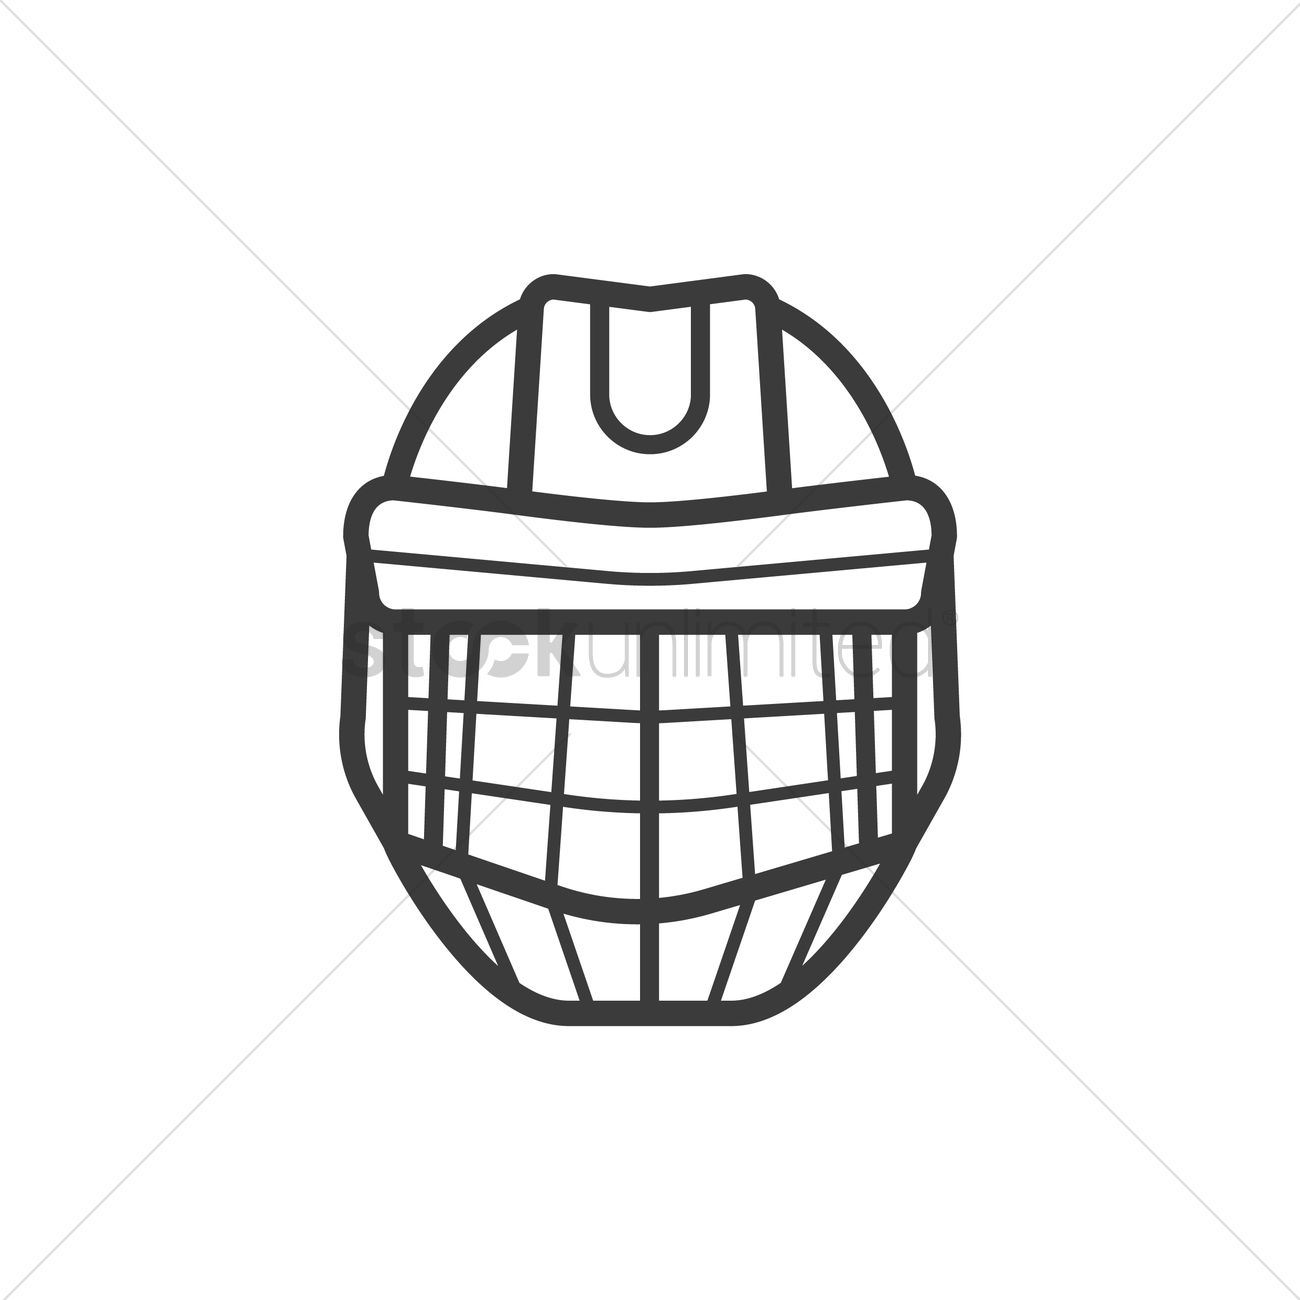 Hockey goalie mask template choice image professional for Bauer goalie mask template